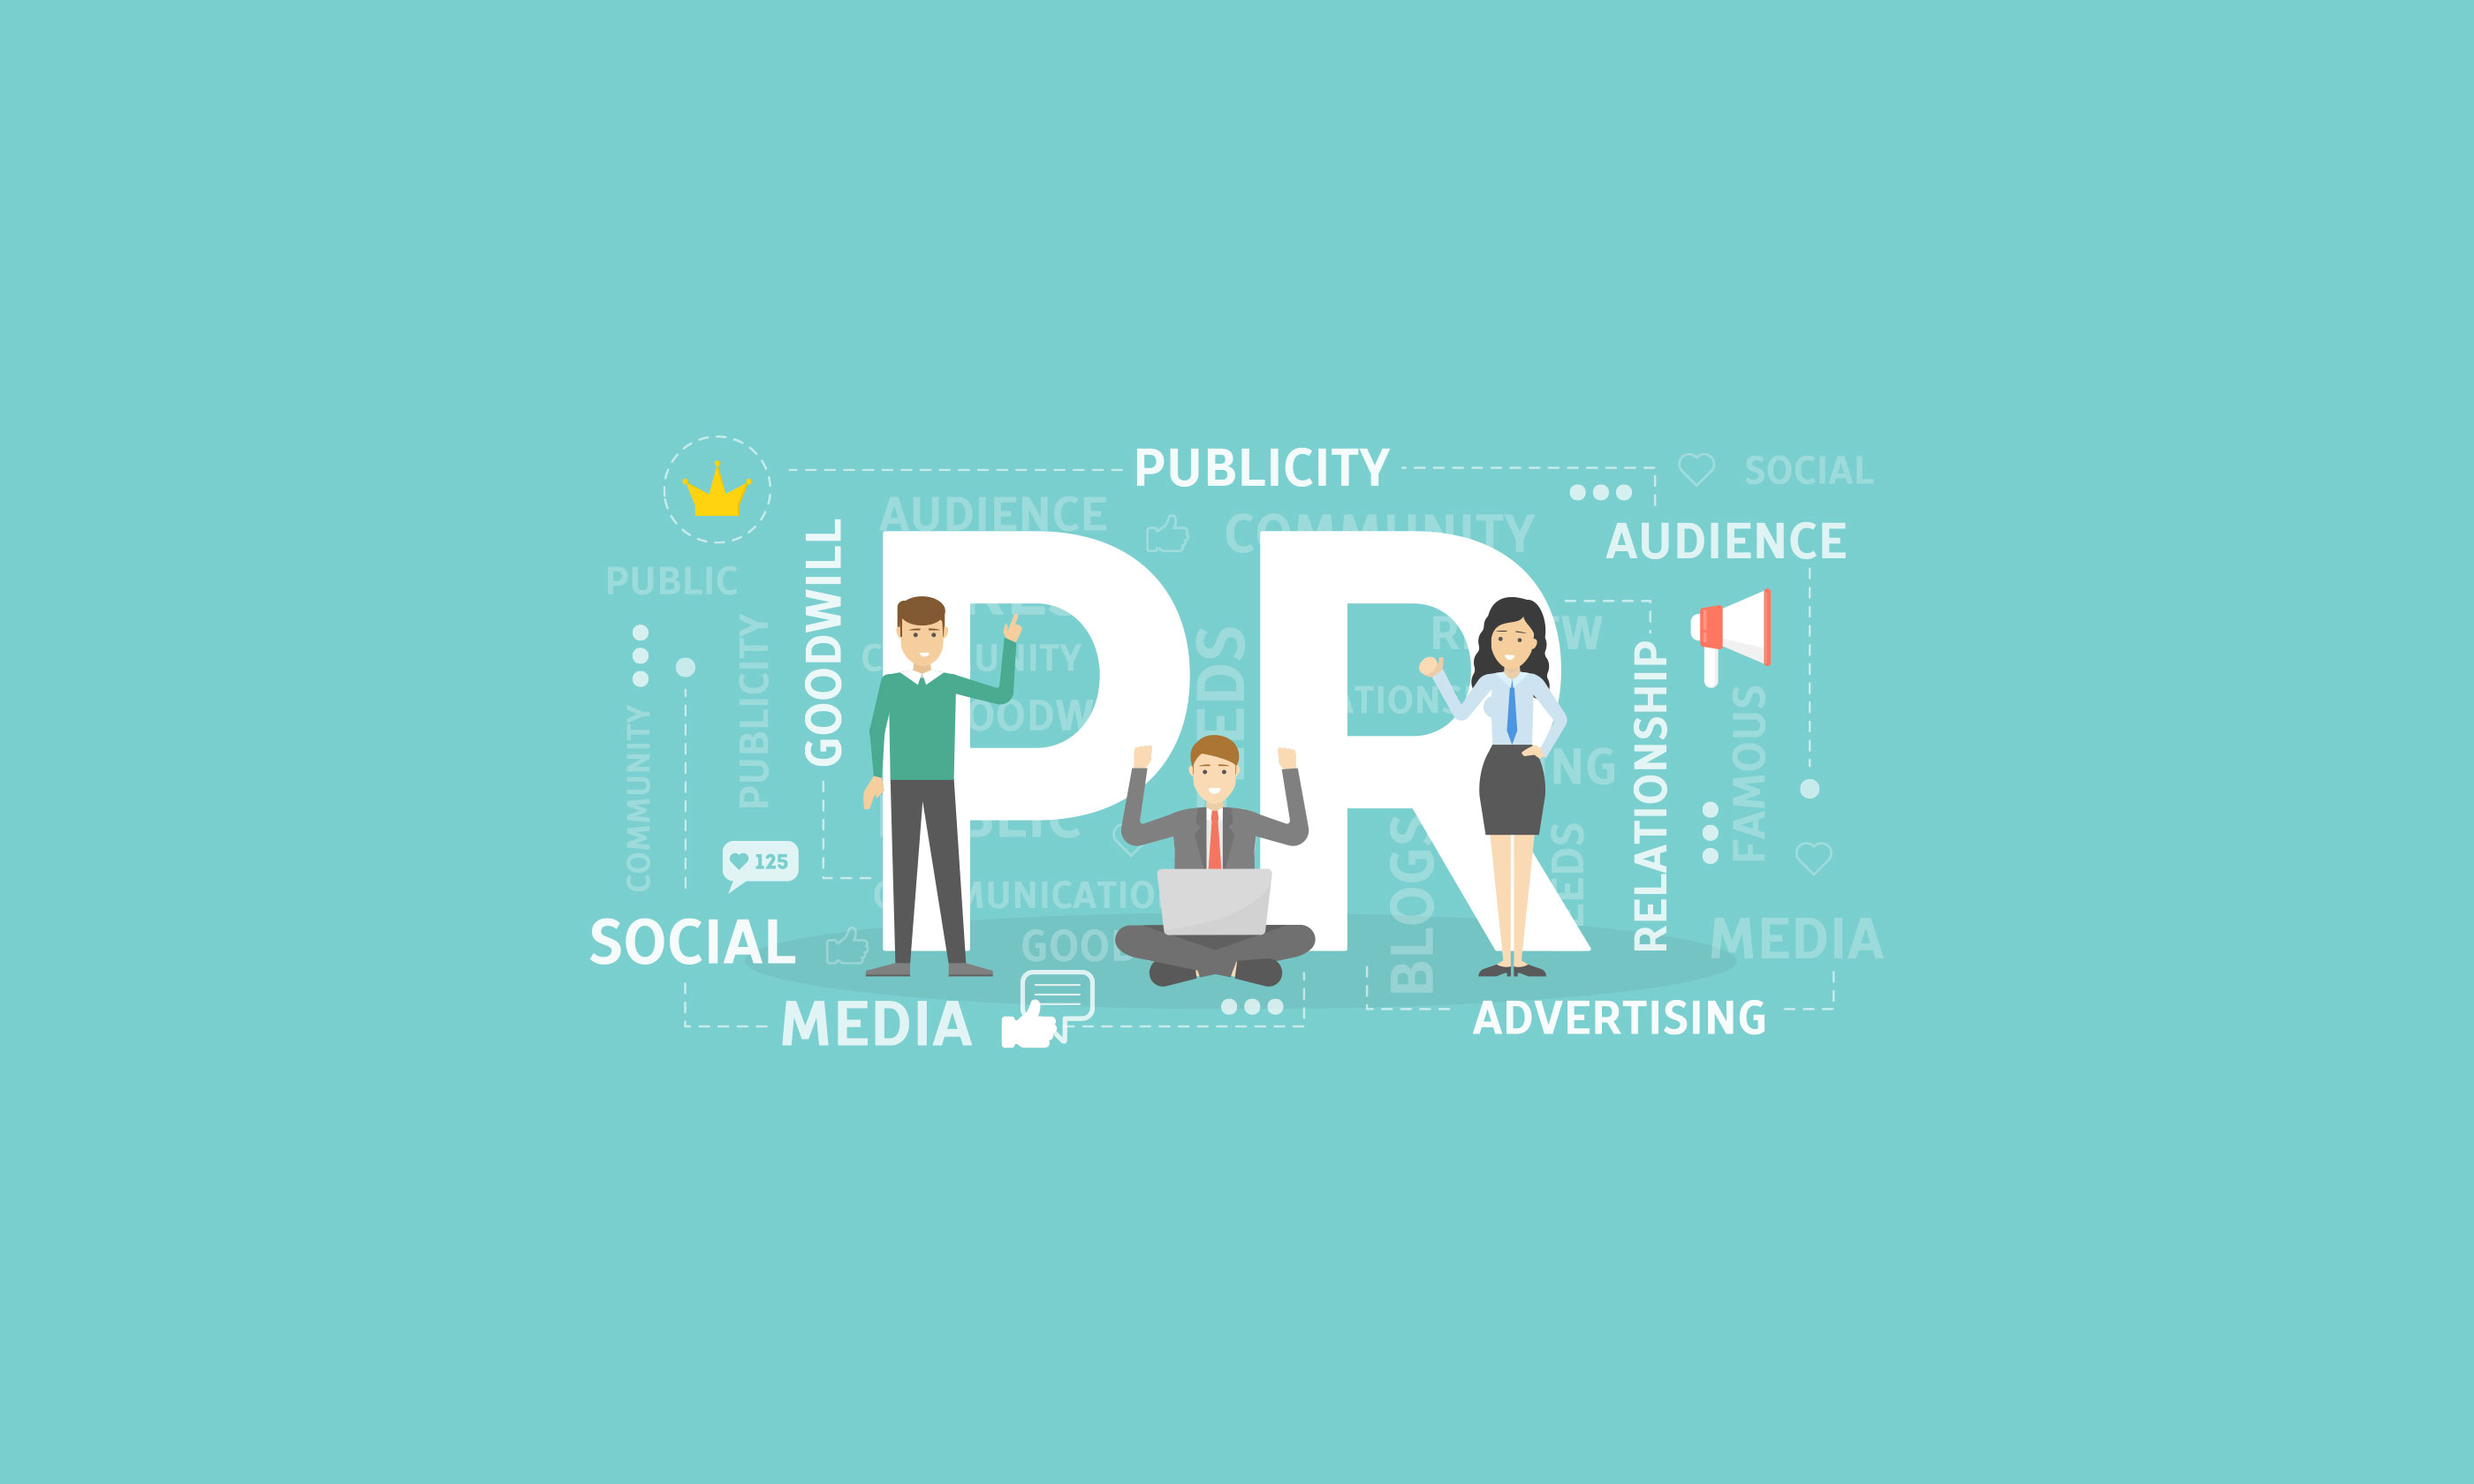 PR - Public Relations Management and Public Relations Marketing Slider